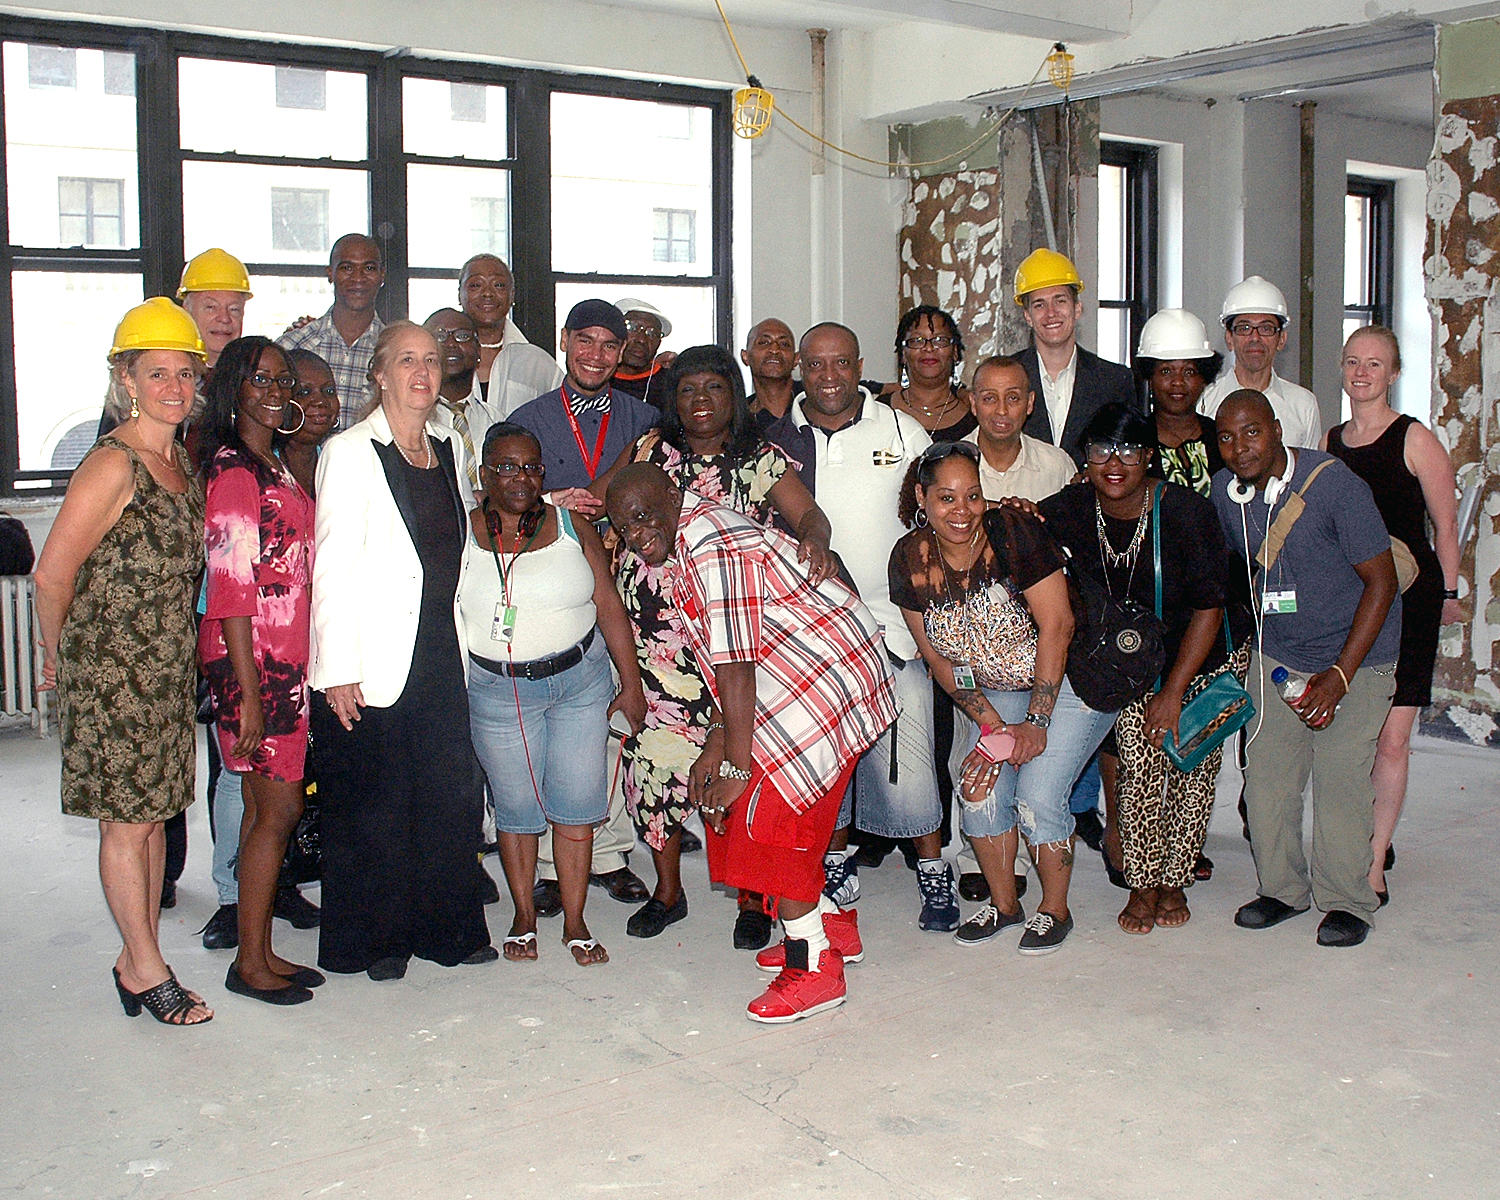 Gale A. Brewer, Manhattan Borough President - Sharen Duke - Brenda-Starks Ross - Murray Levi, Architect, Honored Guests and ASCNYC Peer Educators